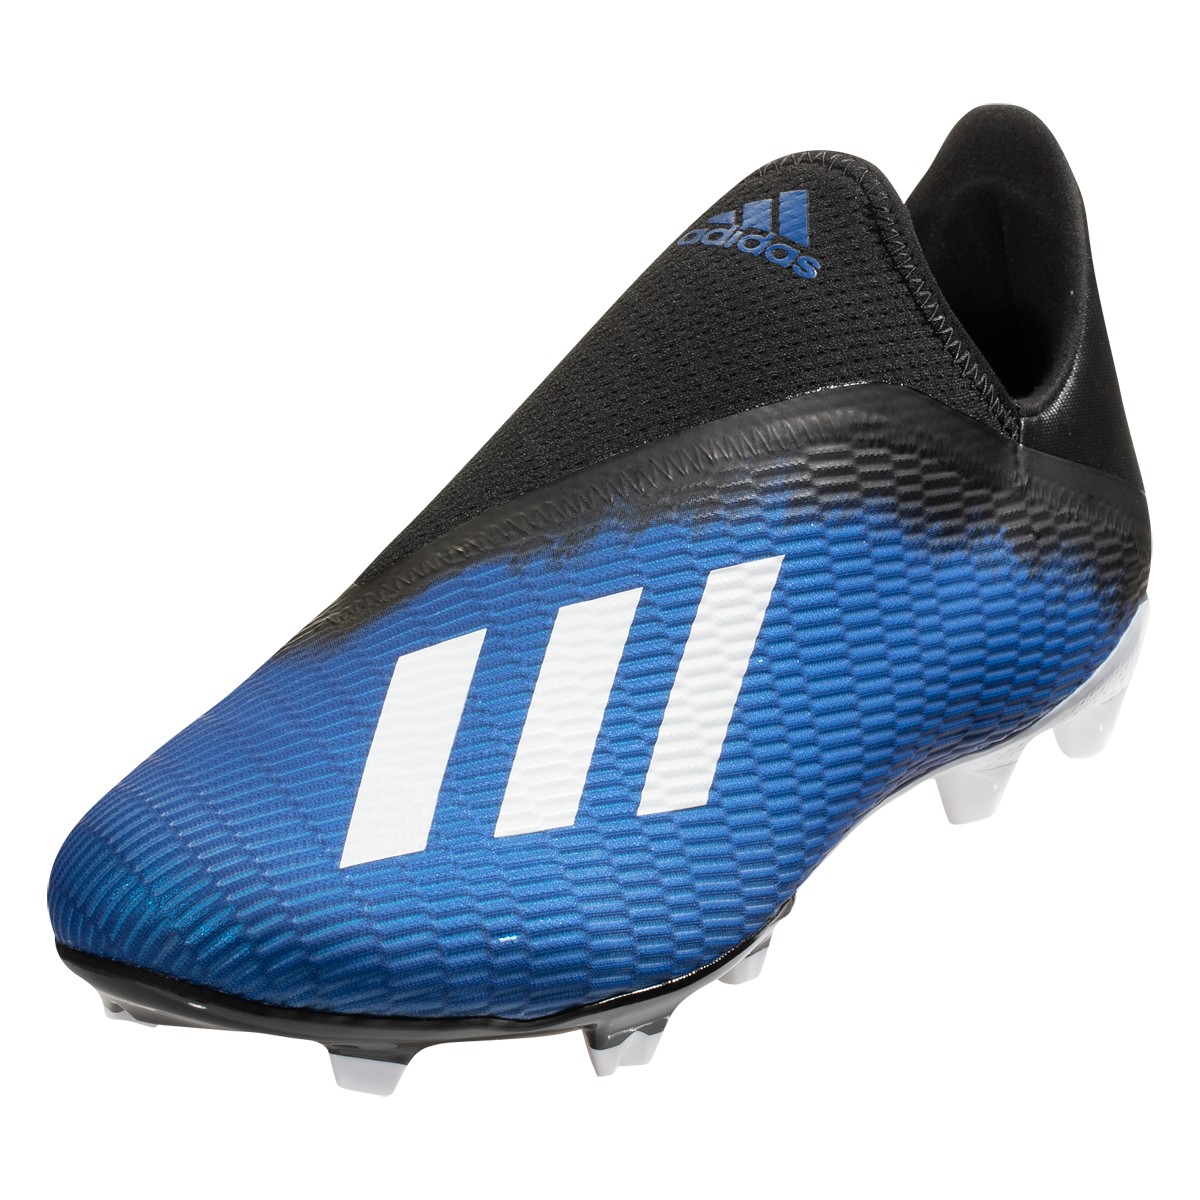 Adidas X 19 3 Laceless Fg Soccer Cleat Royal Blue White Black 10 5 In 2020 Soccer Cleats Blue White Black 13